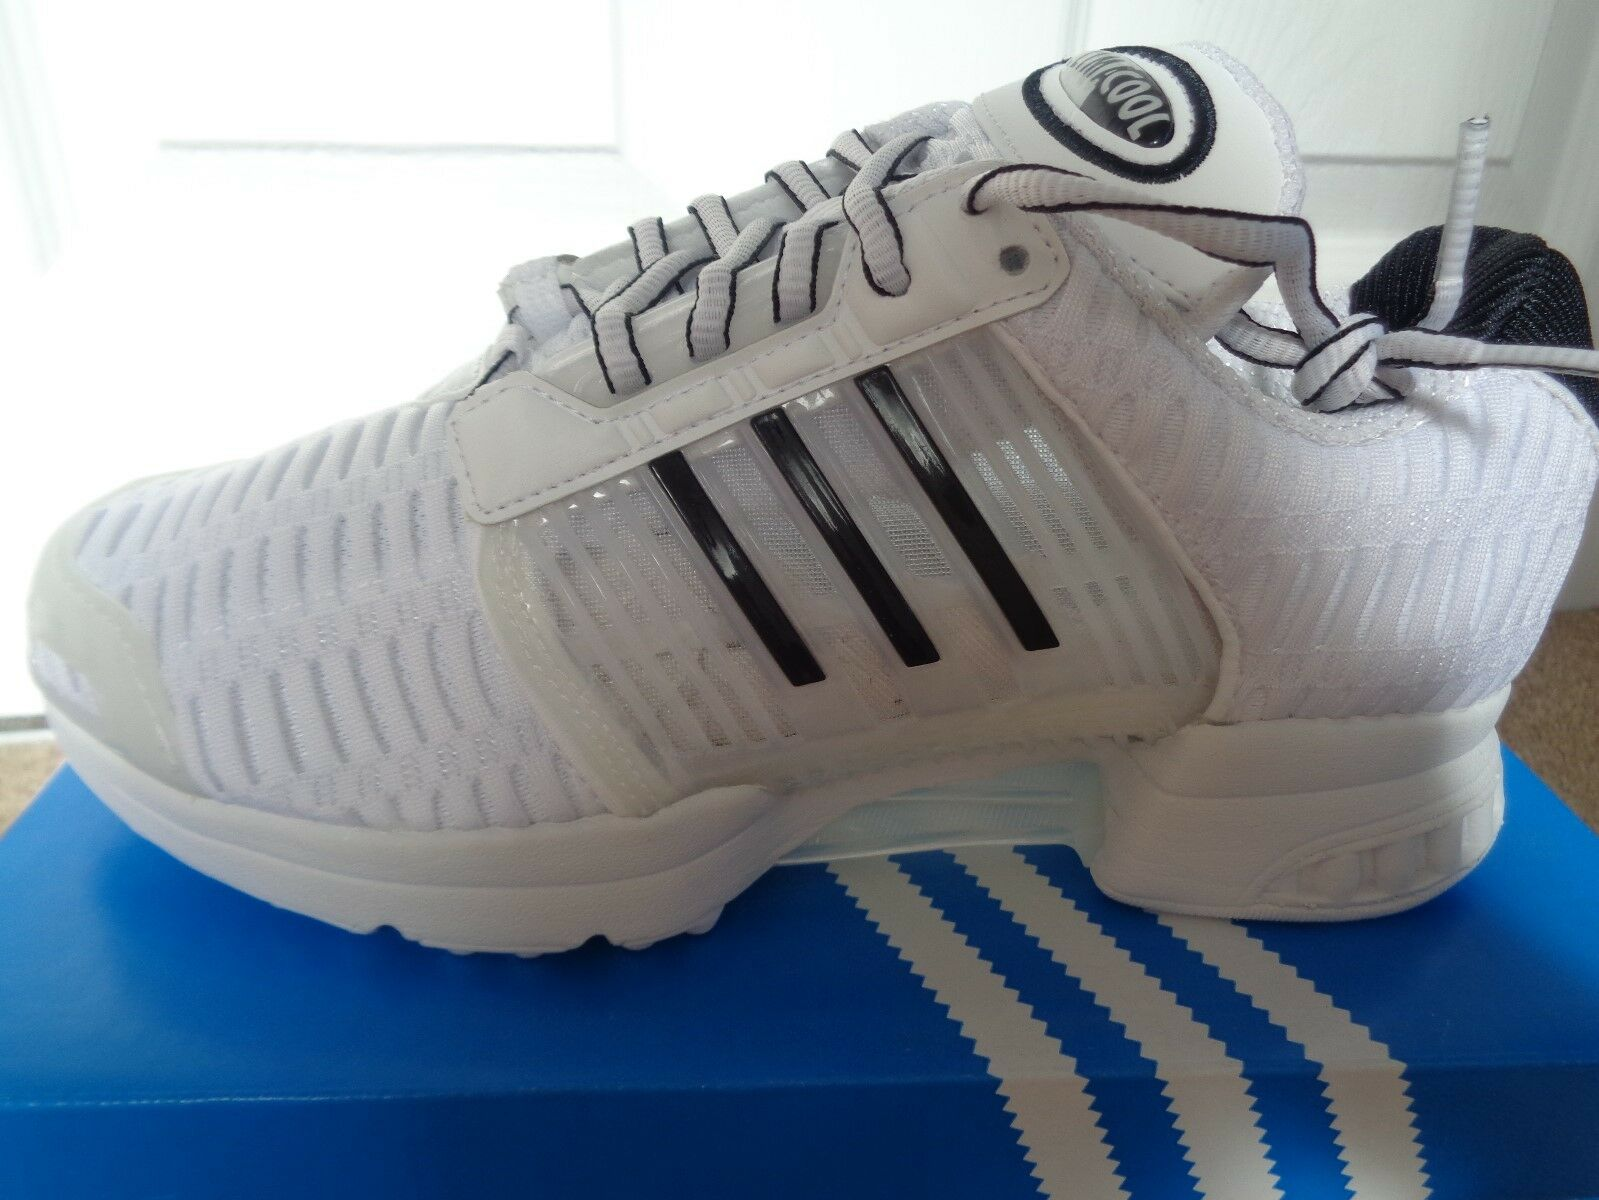 Adidas trainers Clima Cool 1 mens trainers Adidas sneakers BB0671 uk 5 eu 38 us 5.5 NEW+BOX ef1951